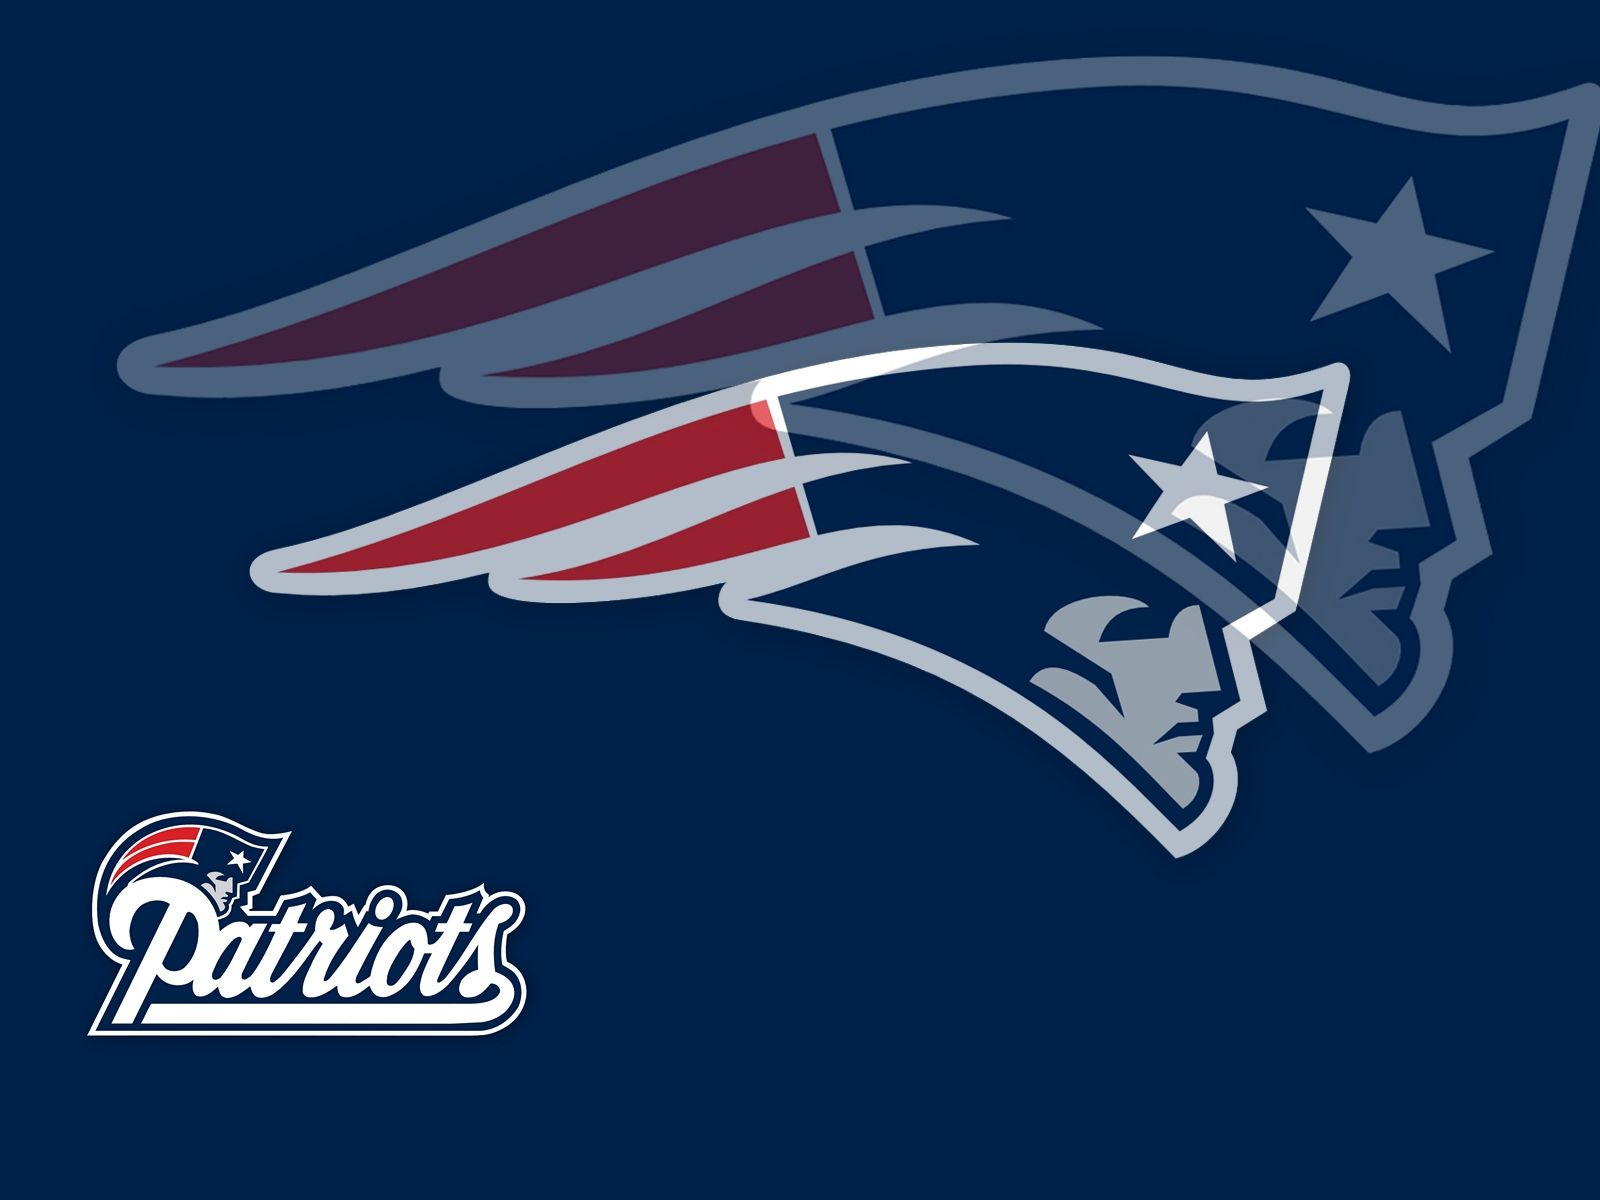 404 File Or Directory Not Found New England Patriots Images New England Patriots Wallpaper New England Patriots